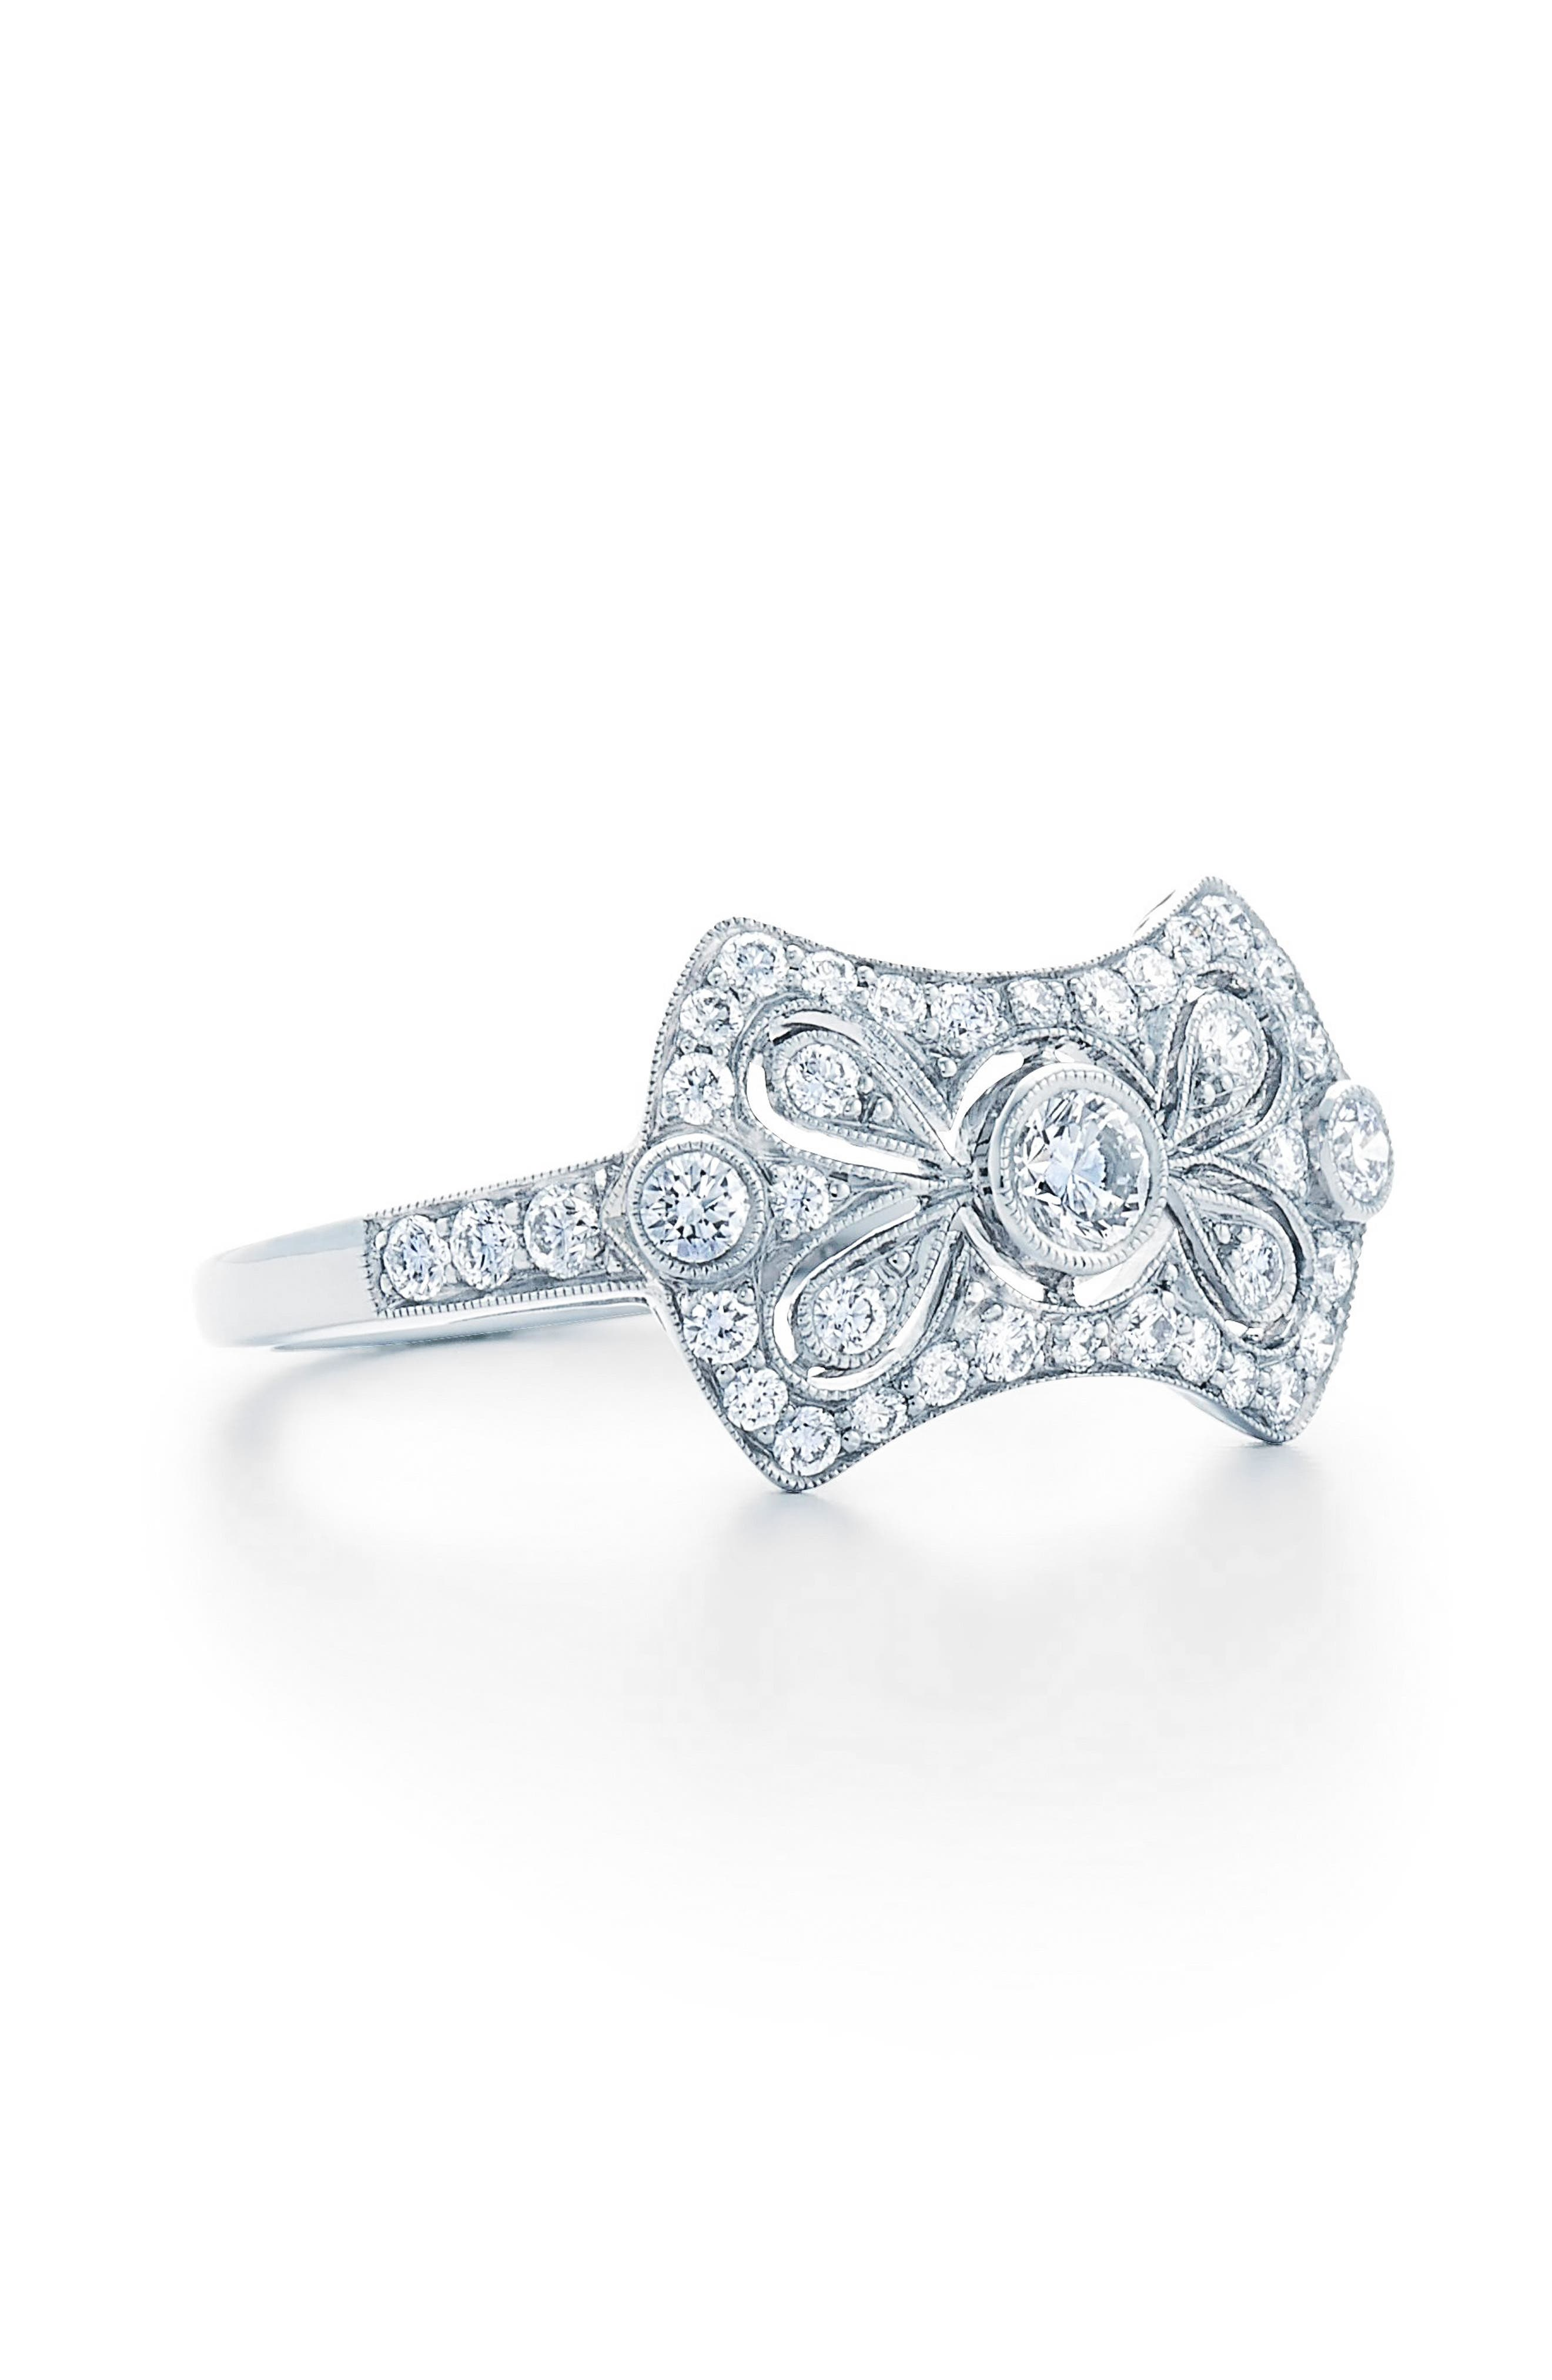 Main Image - Kwiat Vintage Bow Diamond Ring